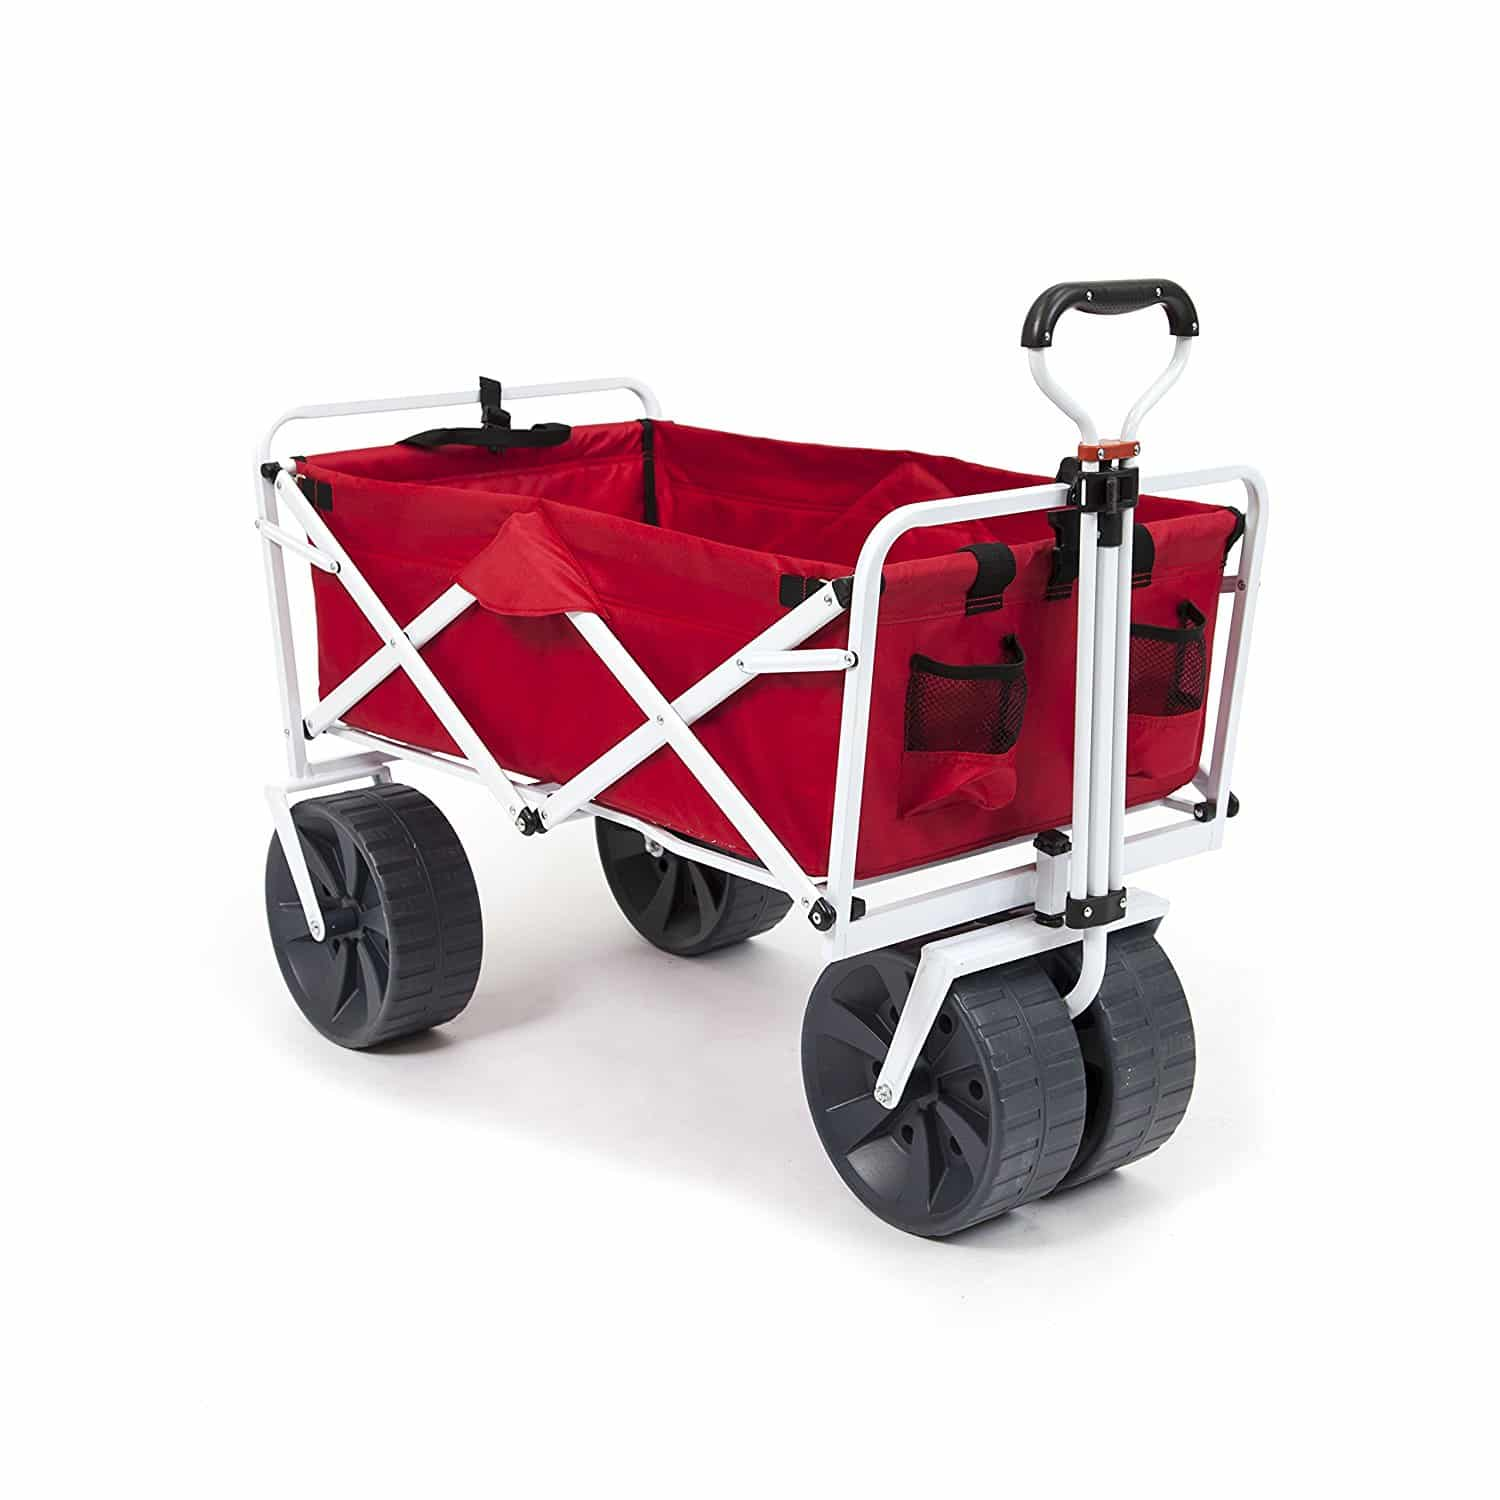 Blue Mac Sports Collapsible Outdoor Utility Wagon with Folding Table and Drink Holders with Straps